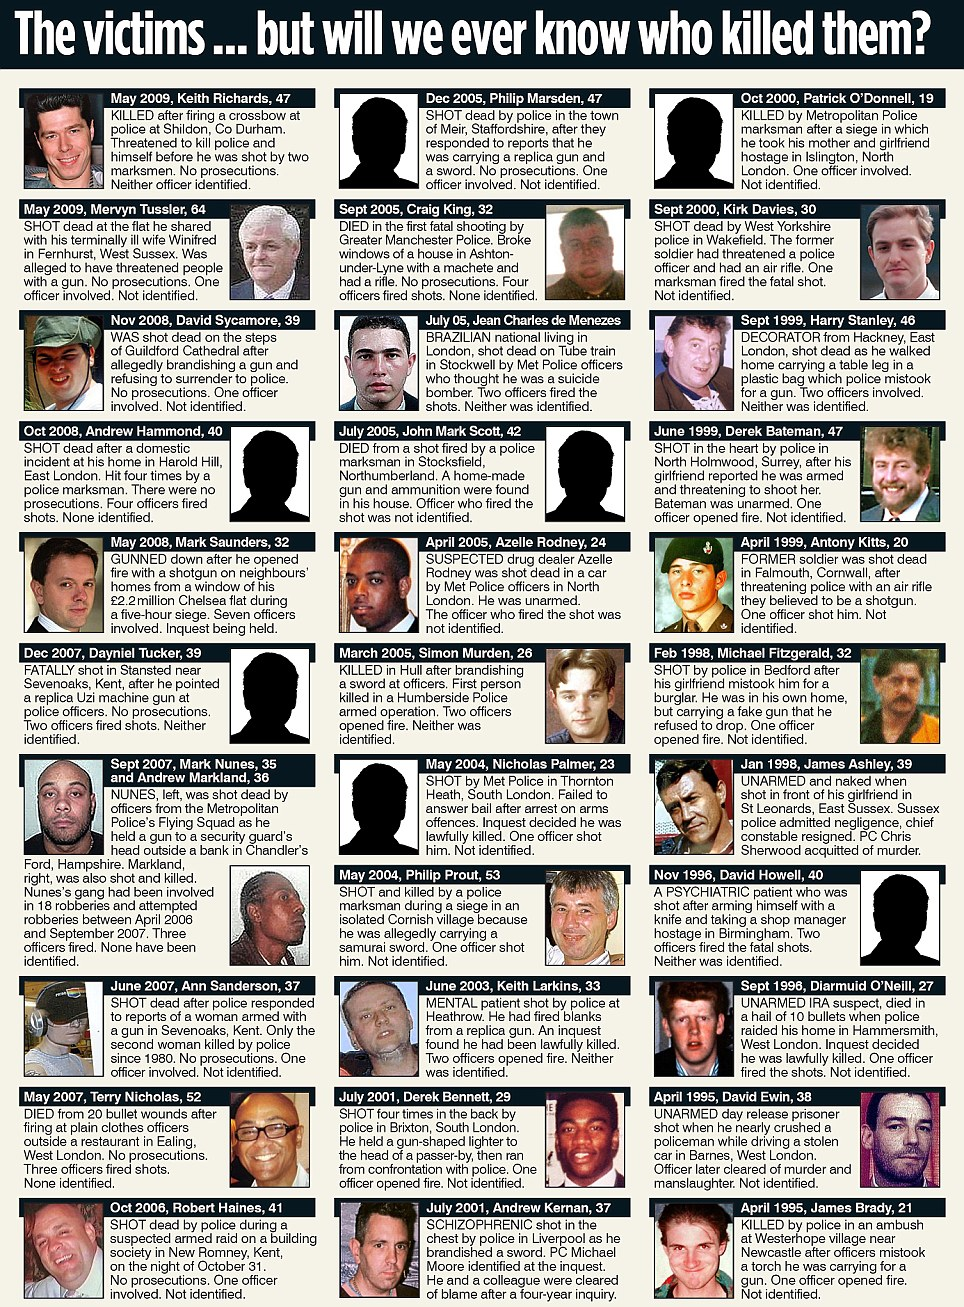 The victims...but will we ever know who killed them?